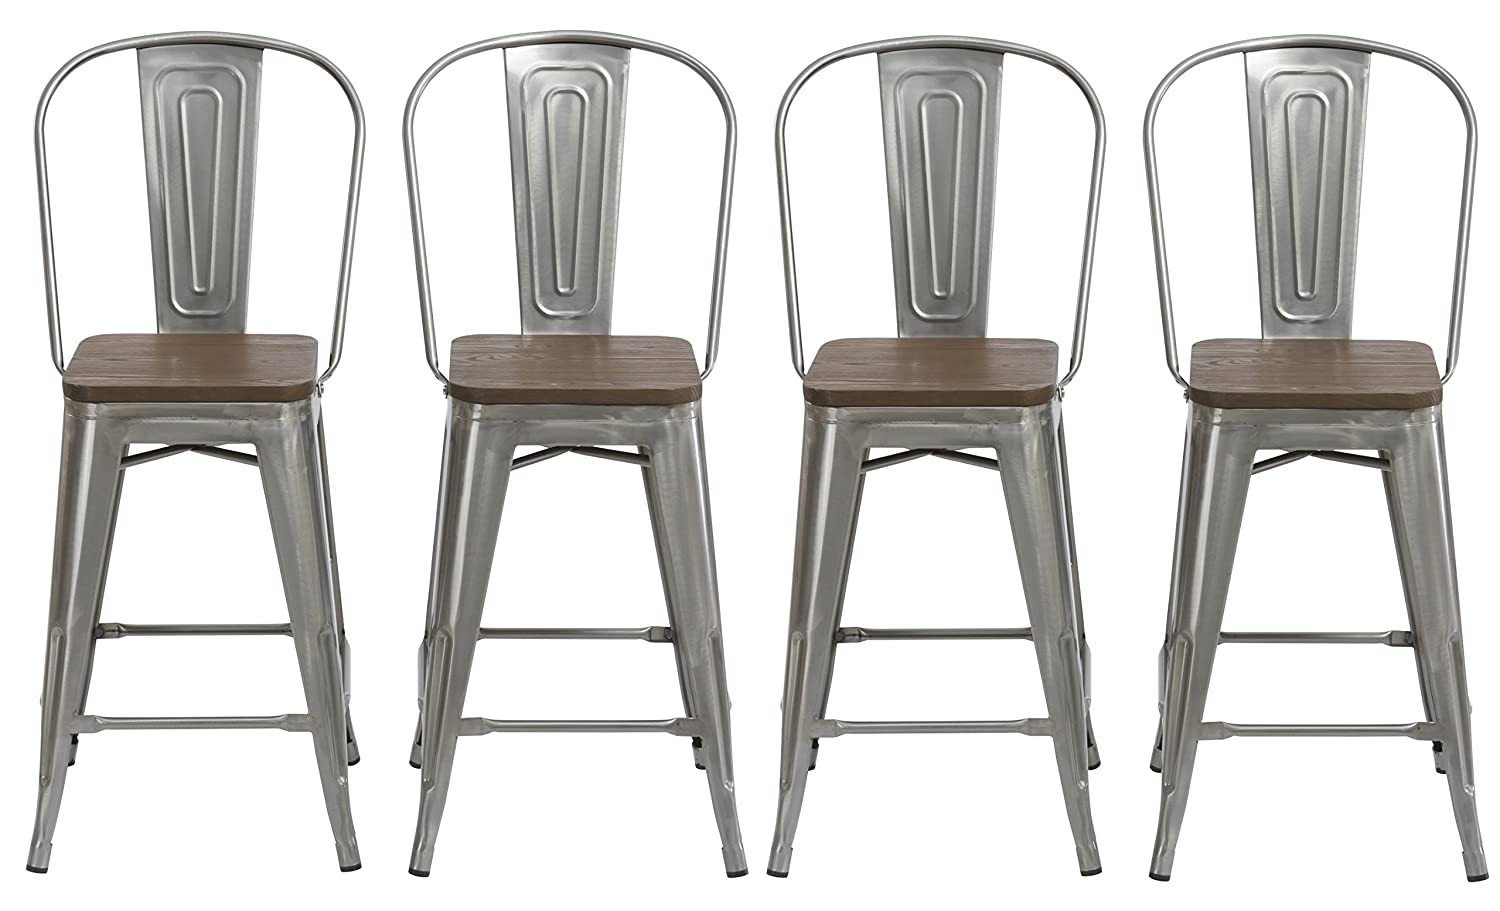 BTEXPERT 24 Industrial Clear Metal Vintage Antique Style Distressed Brush Rustic Dining Counter height Bar Stool Chair High Back Handmade Wood top seat Set of 4 Barstool